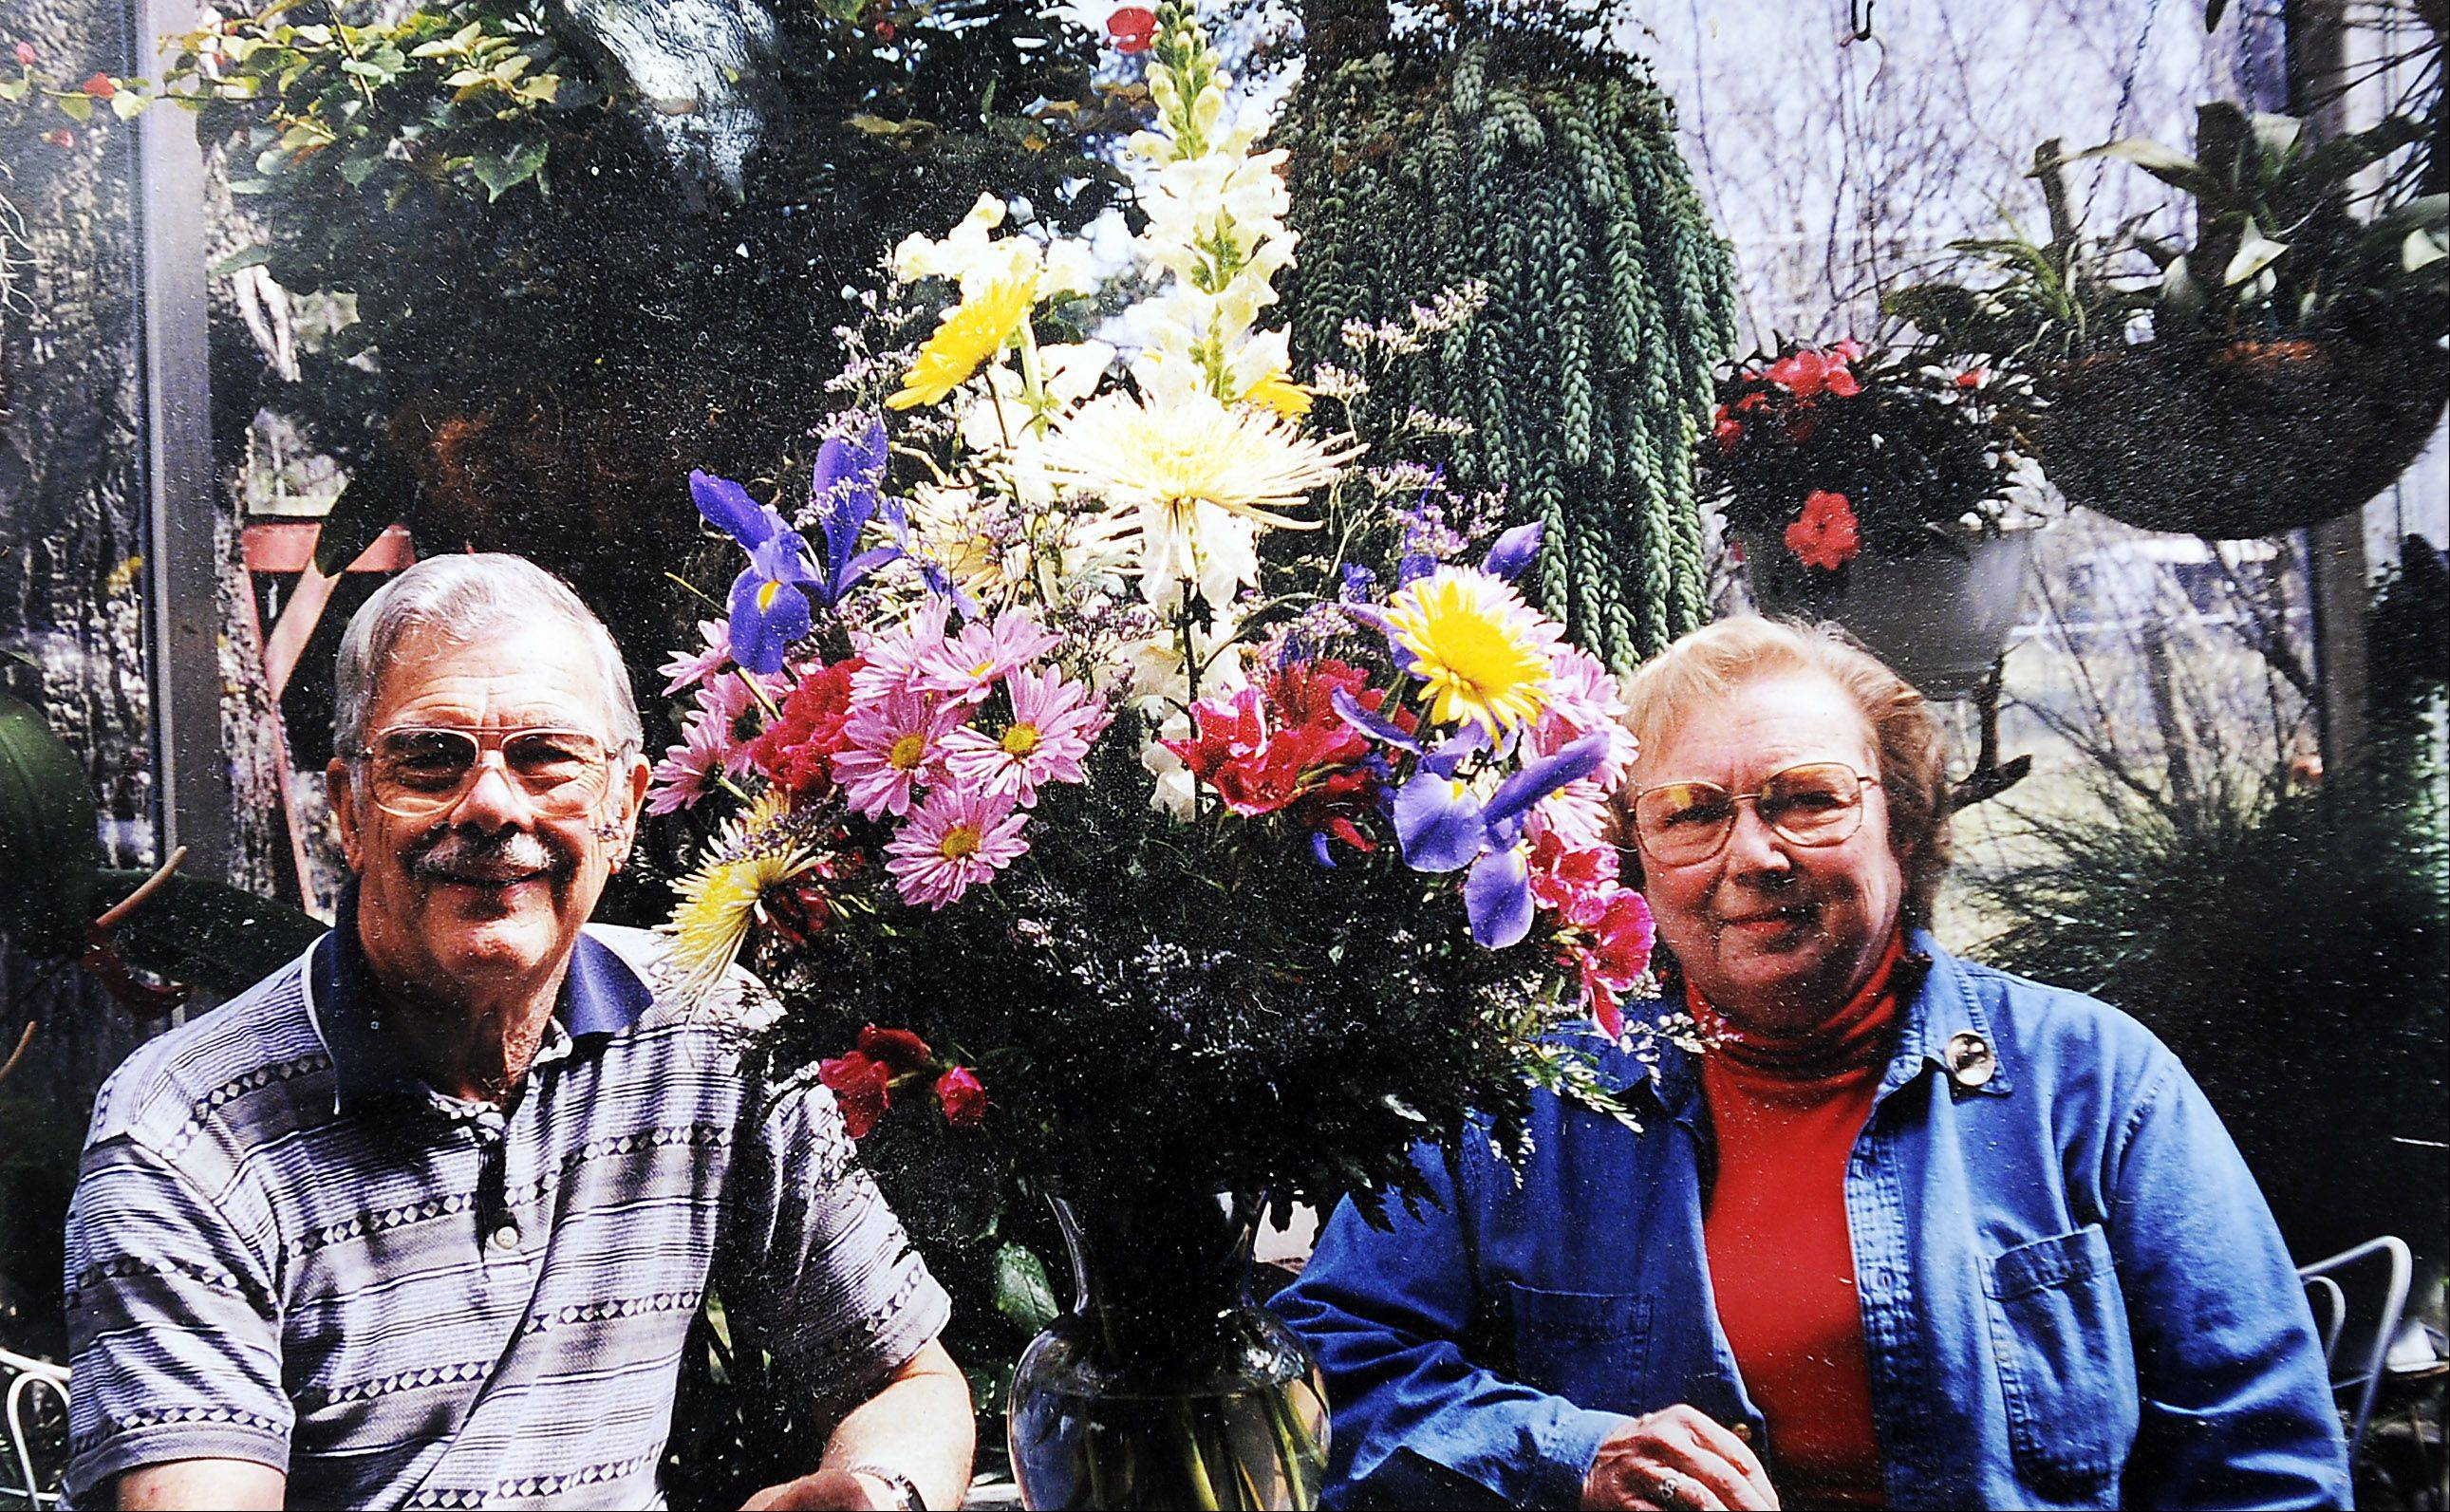 Having spent so many happy moments with her husband, Bill, in their 75-degree greenhouse, 85-year-old widow Penny Bailey will take those memories with her as she moves into senior housing. But she has to decide which of the hundreds of plants will come with her.